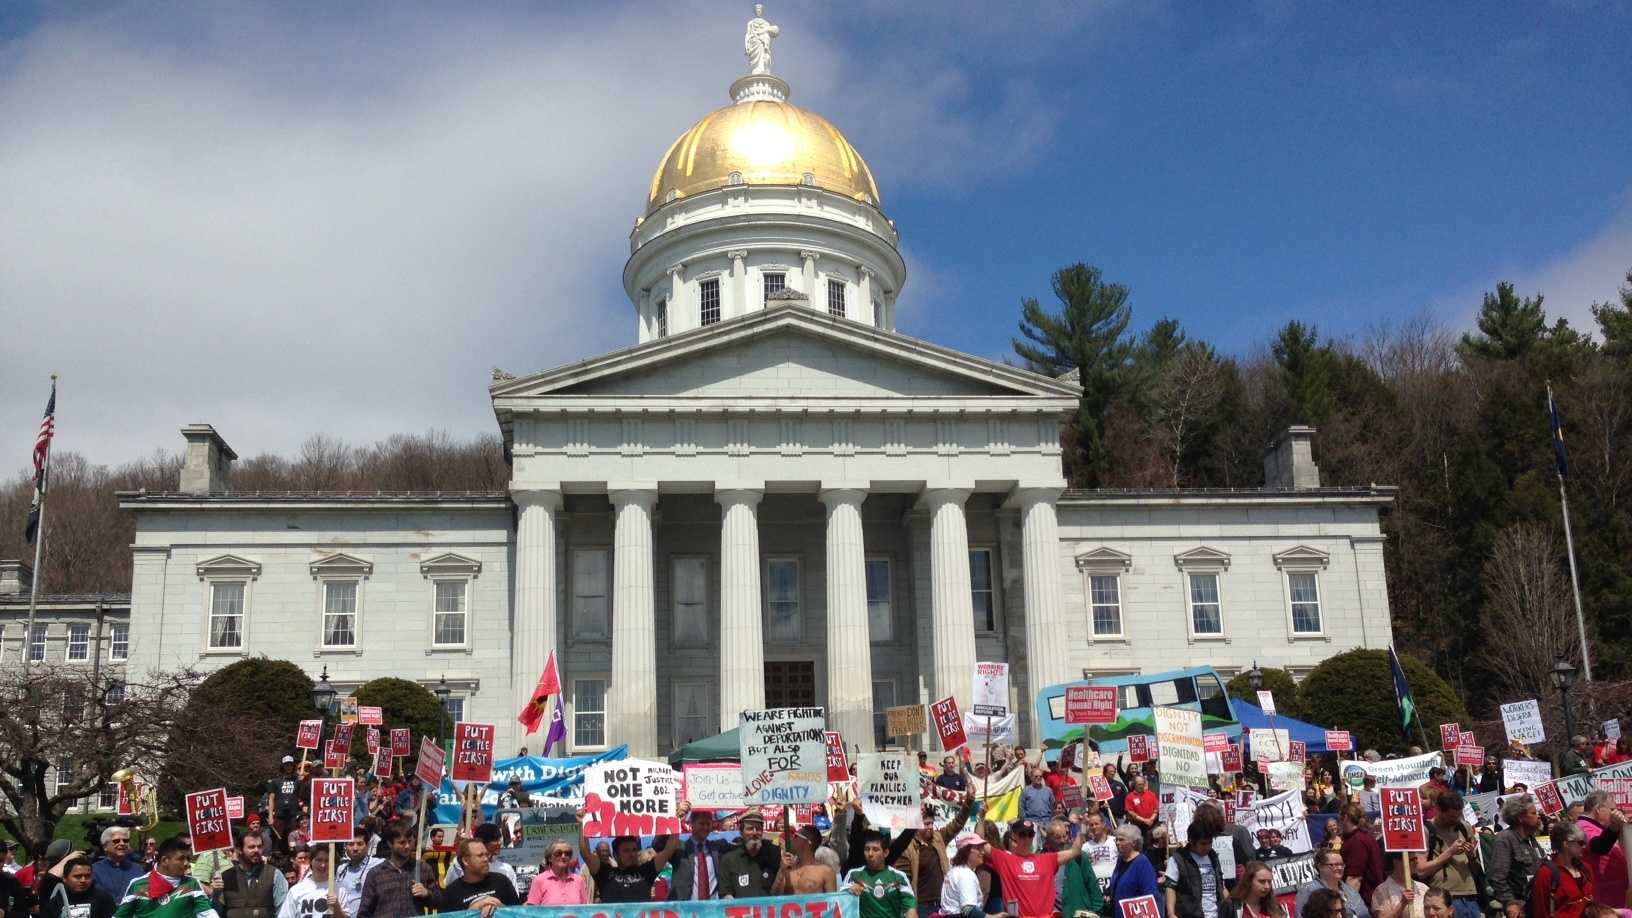 Hundreds of labor activists marched through Montpelier to the Statehouse Thursday to press for action on a range of legislation.